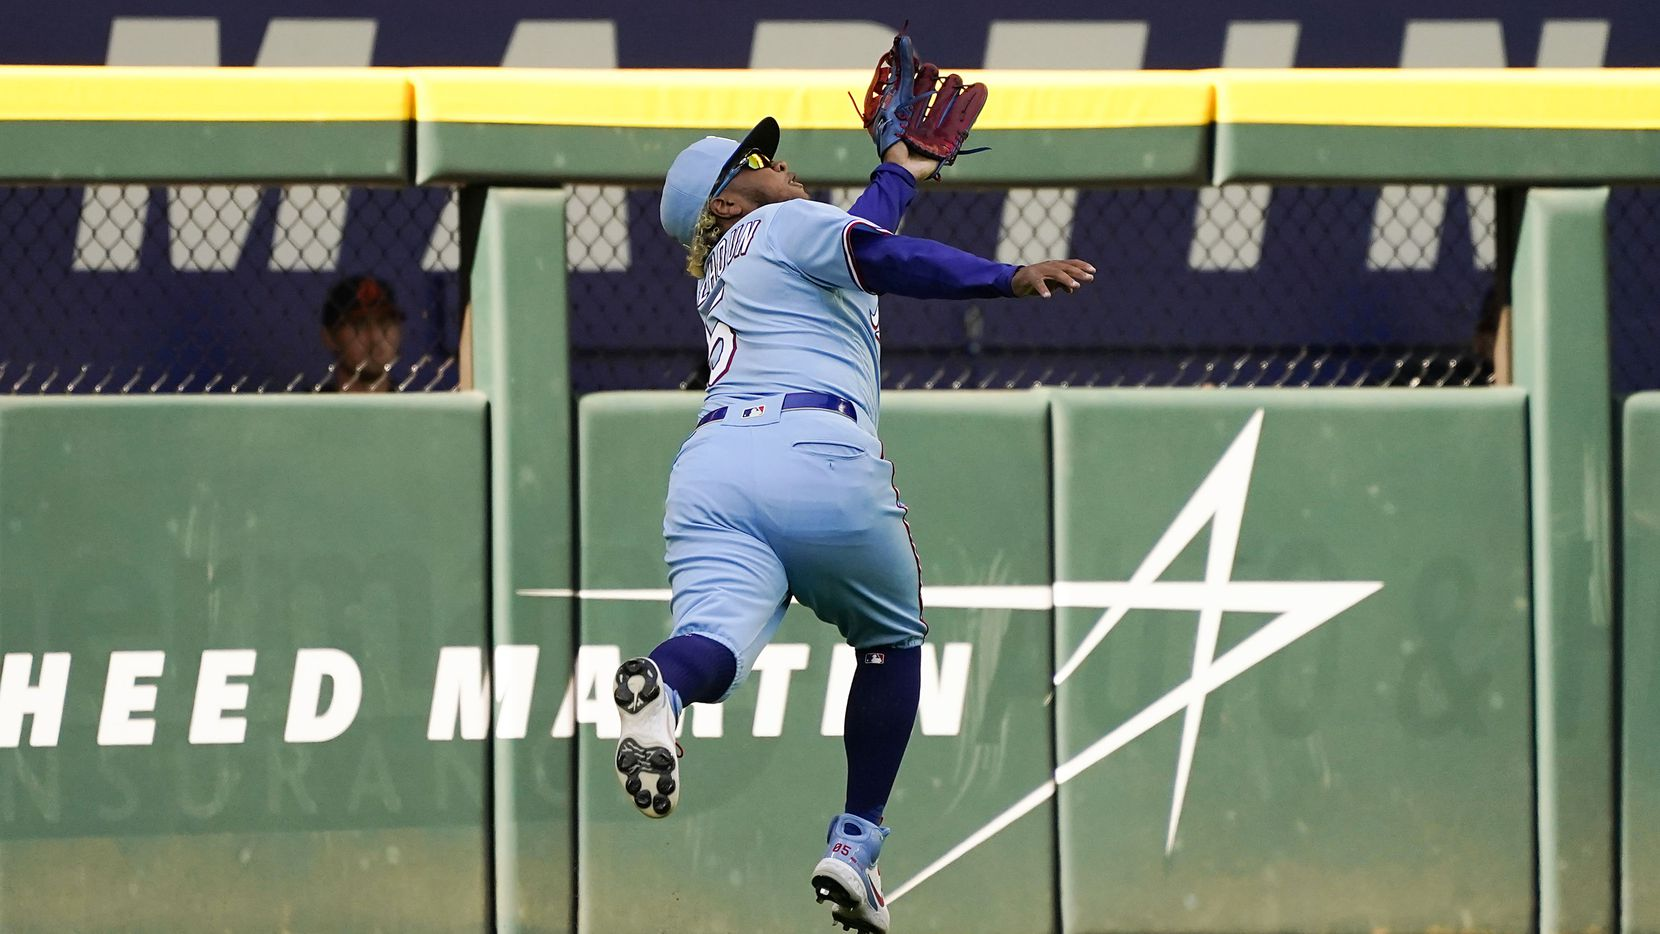 Texas Rangers left fielder Willie Calhoun makes a running catch on a line drive by Baltimore Orioles first baseman Ryan Mountcastle during the tenth inning of a 1-0 walkoff victory at Globe Life Field on Sunday, April 18, 2021.